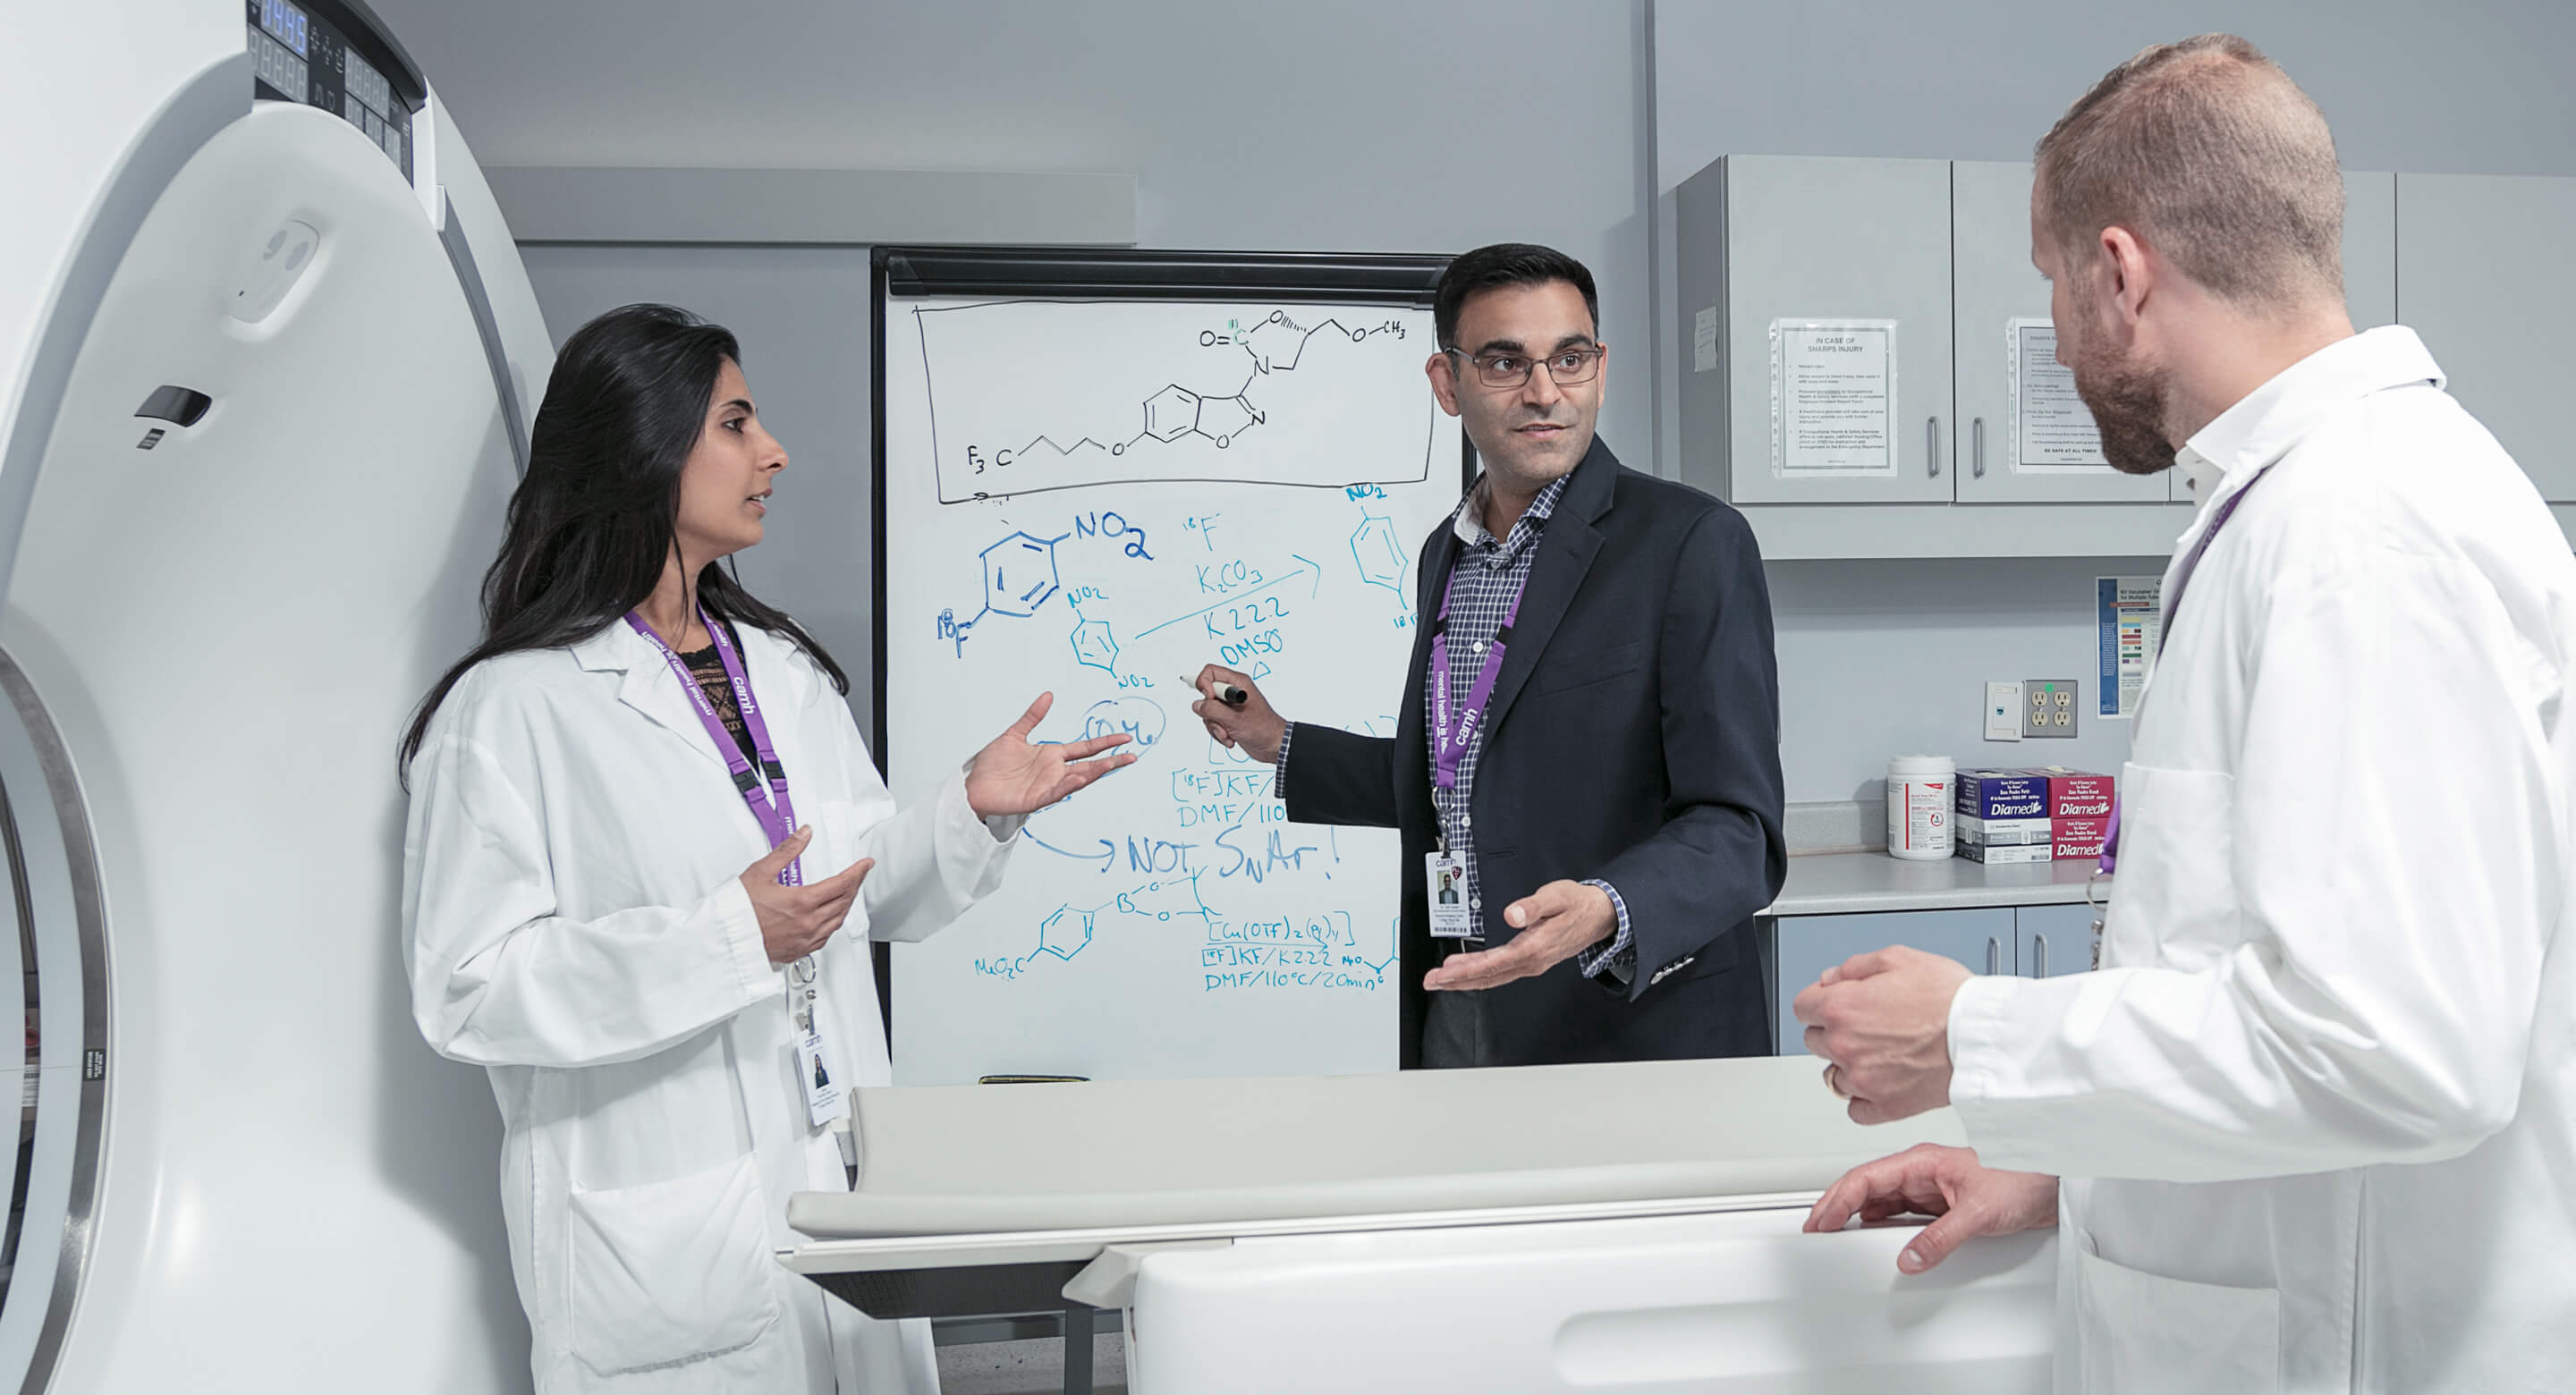 Dr. Neil Vasdev (centre), Director of CAMH's Azrieli Centre for Neuro-Radiochemistry, is one of four Canada Research Chairs leading a research project at CAMH that combines brain imaging and music to help treat clinical depression